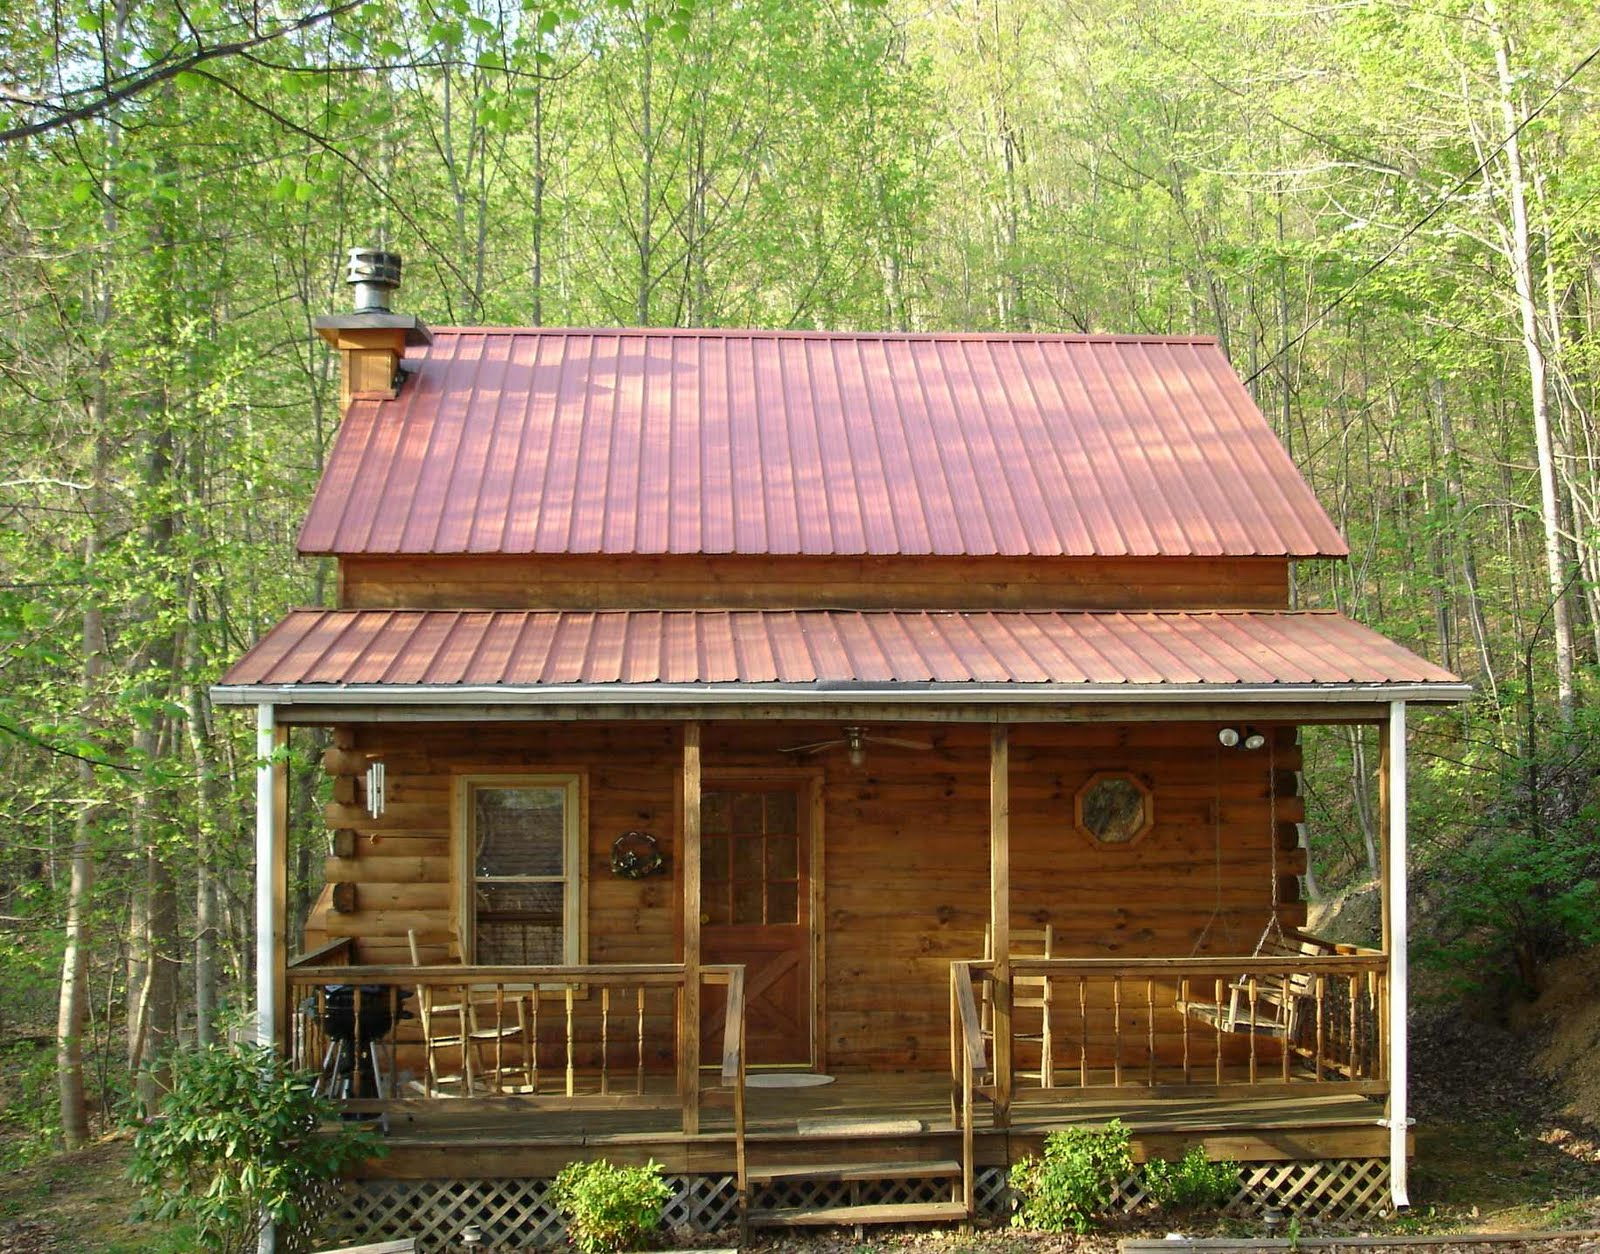 Terrific Buat Testing Doang Small Hunting Cabin Plans Free Largest Home Design Picture Inspirations Pitcheantrous